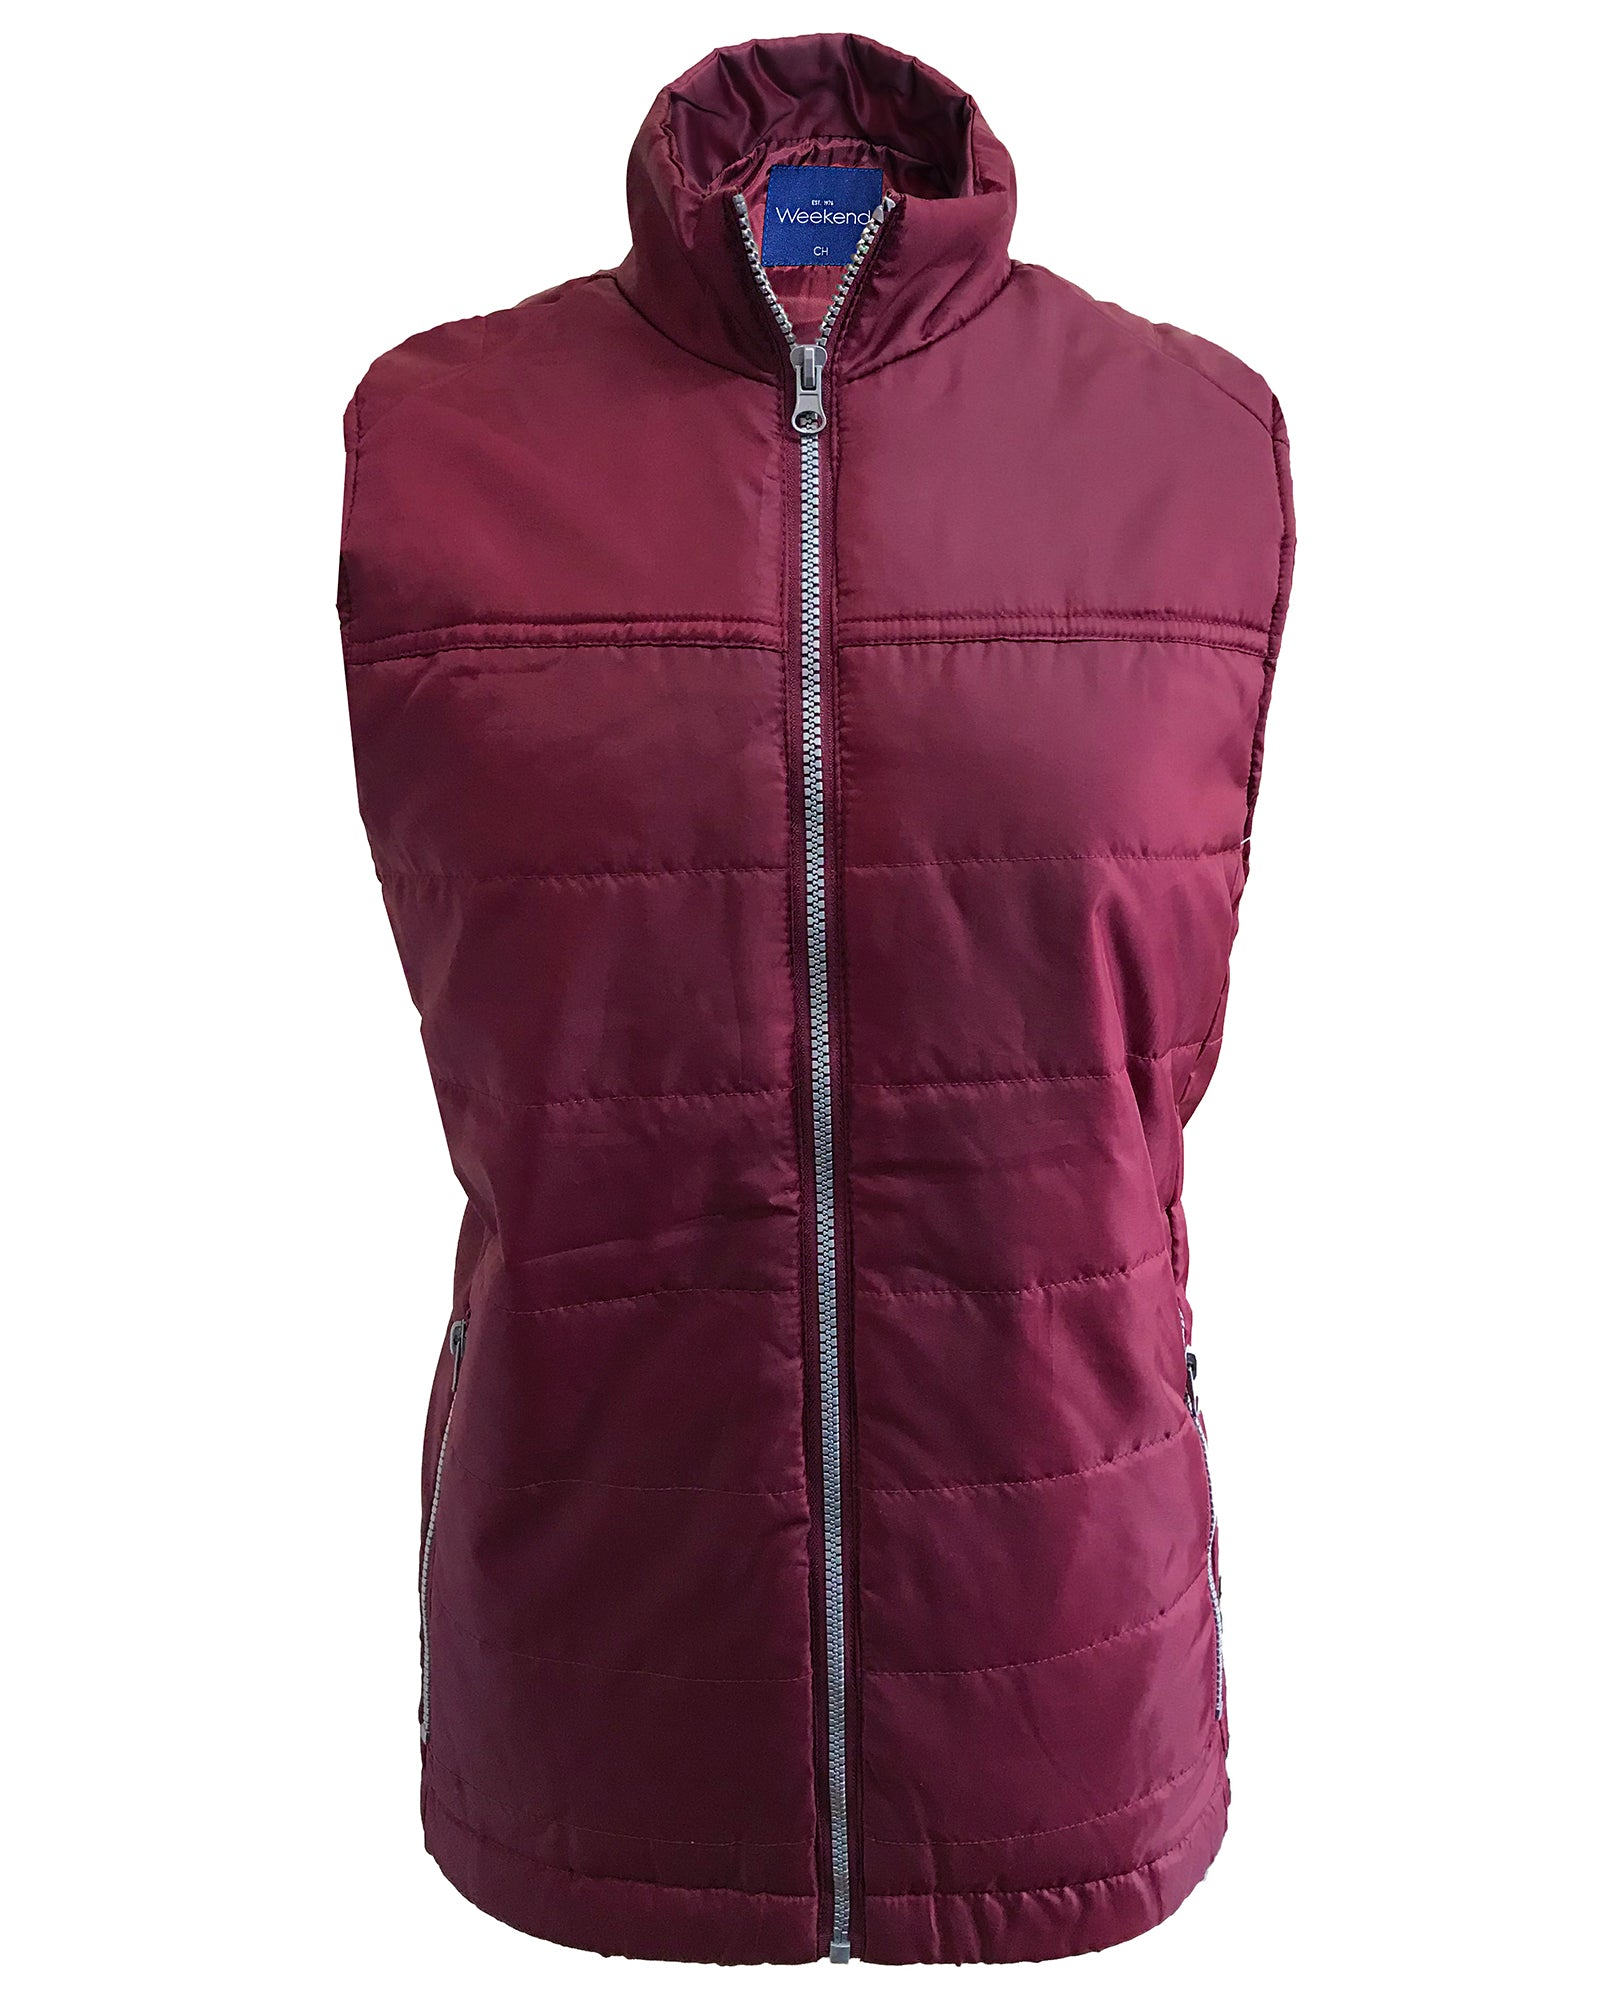 Mens Quilted Multi-Pocket Zipped Bodywarmer Gilet - Wine